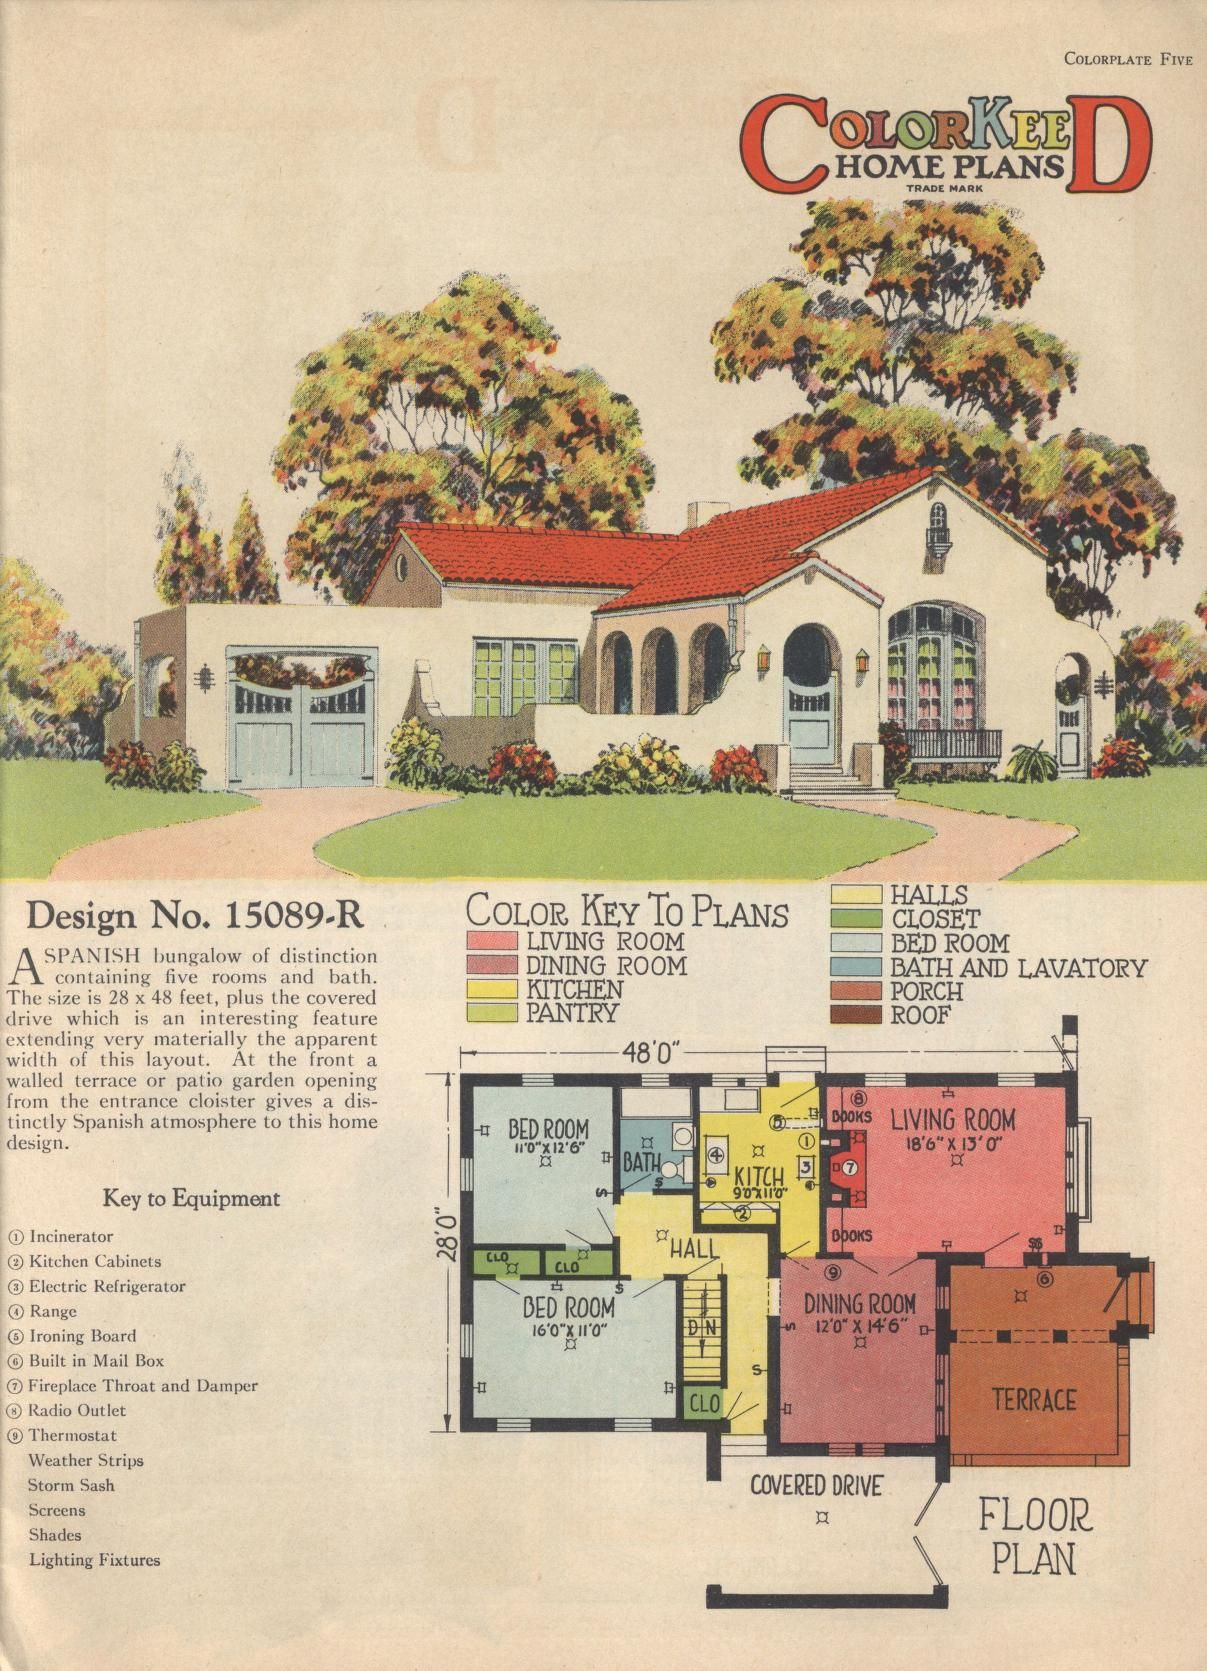 Colorkeed Home Plans Wm A Radford Free Download Borrow And Streaming Internet Archive Spanish Bungalow Spanish Style Homes Vintage House Plans